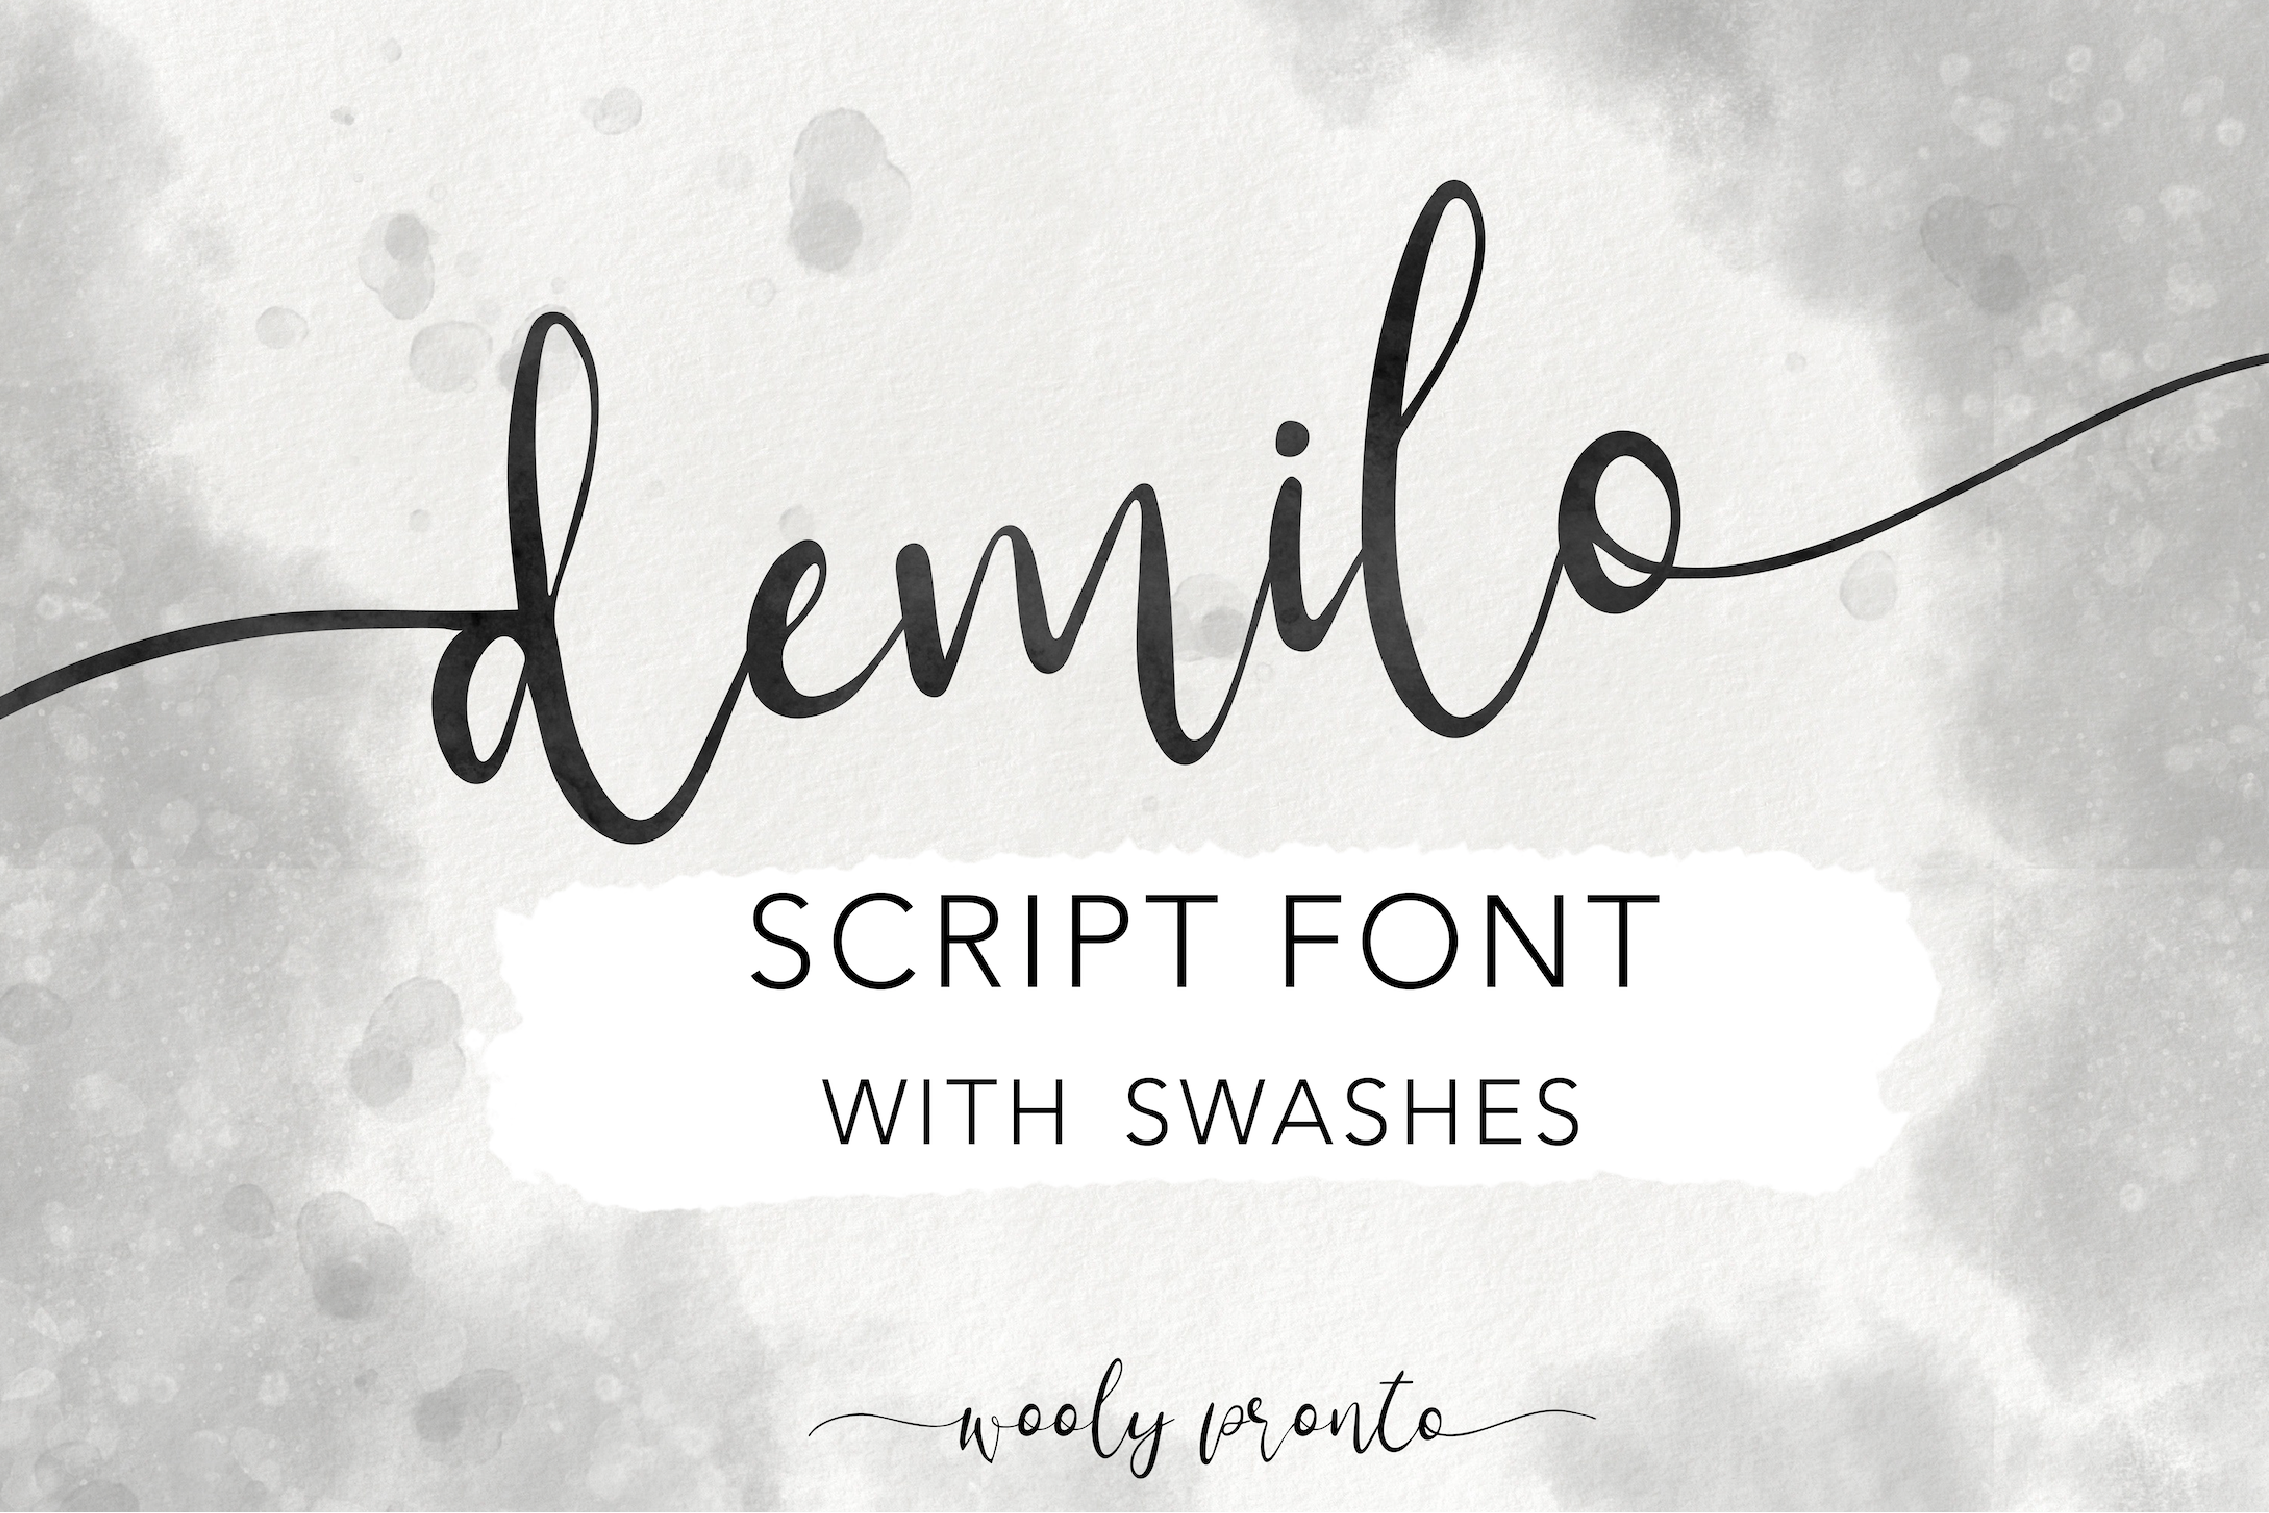 Demilo Handwritten Modern Brush Script Font with Swashes example image 1